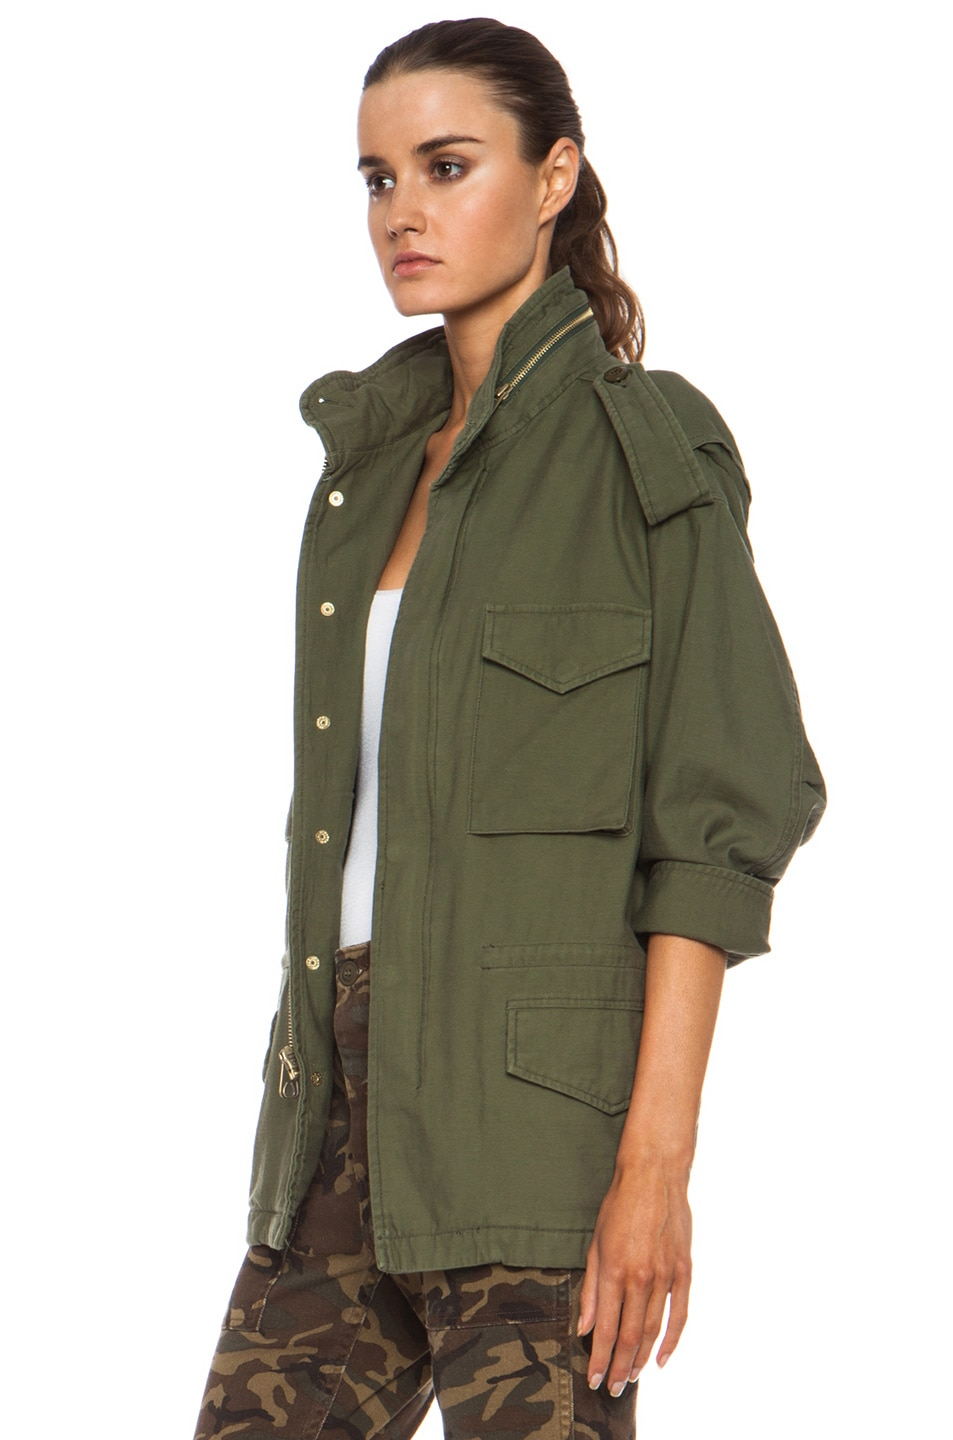 Image 3 of NLST Oversized Cotton M65 Jacket in Olive Drab